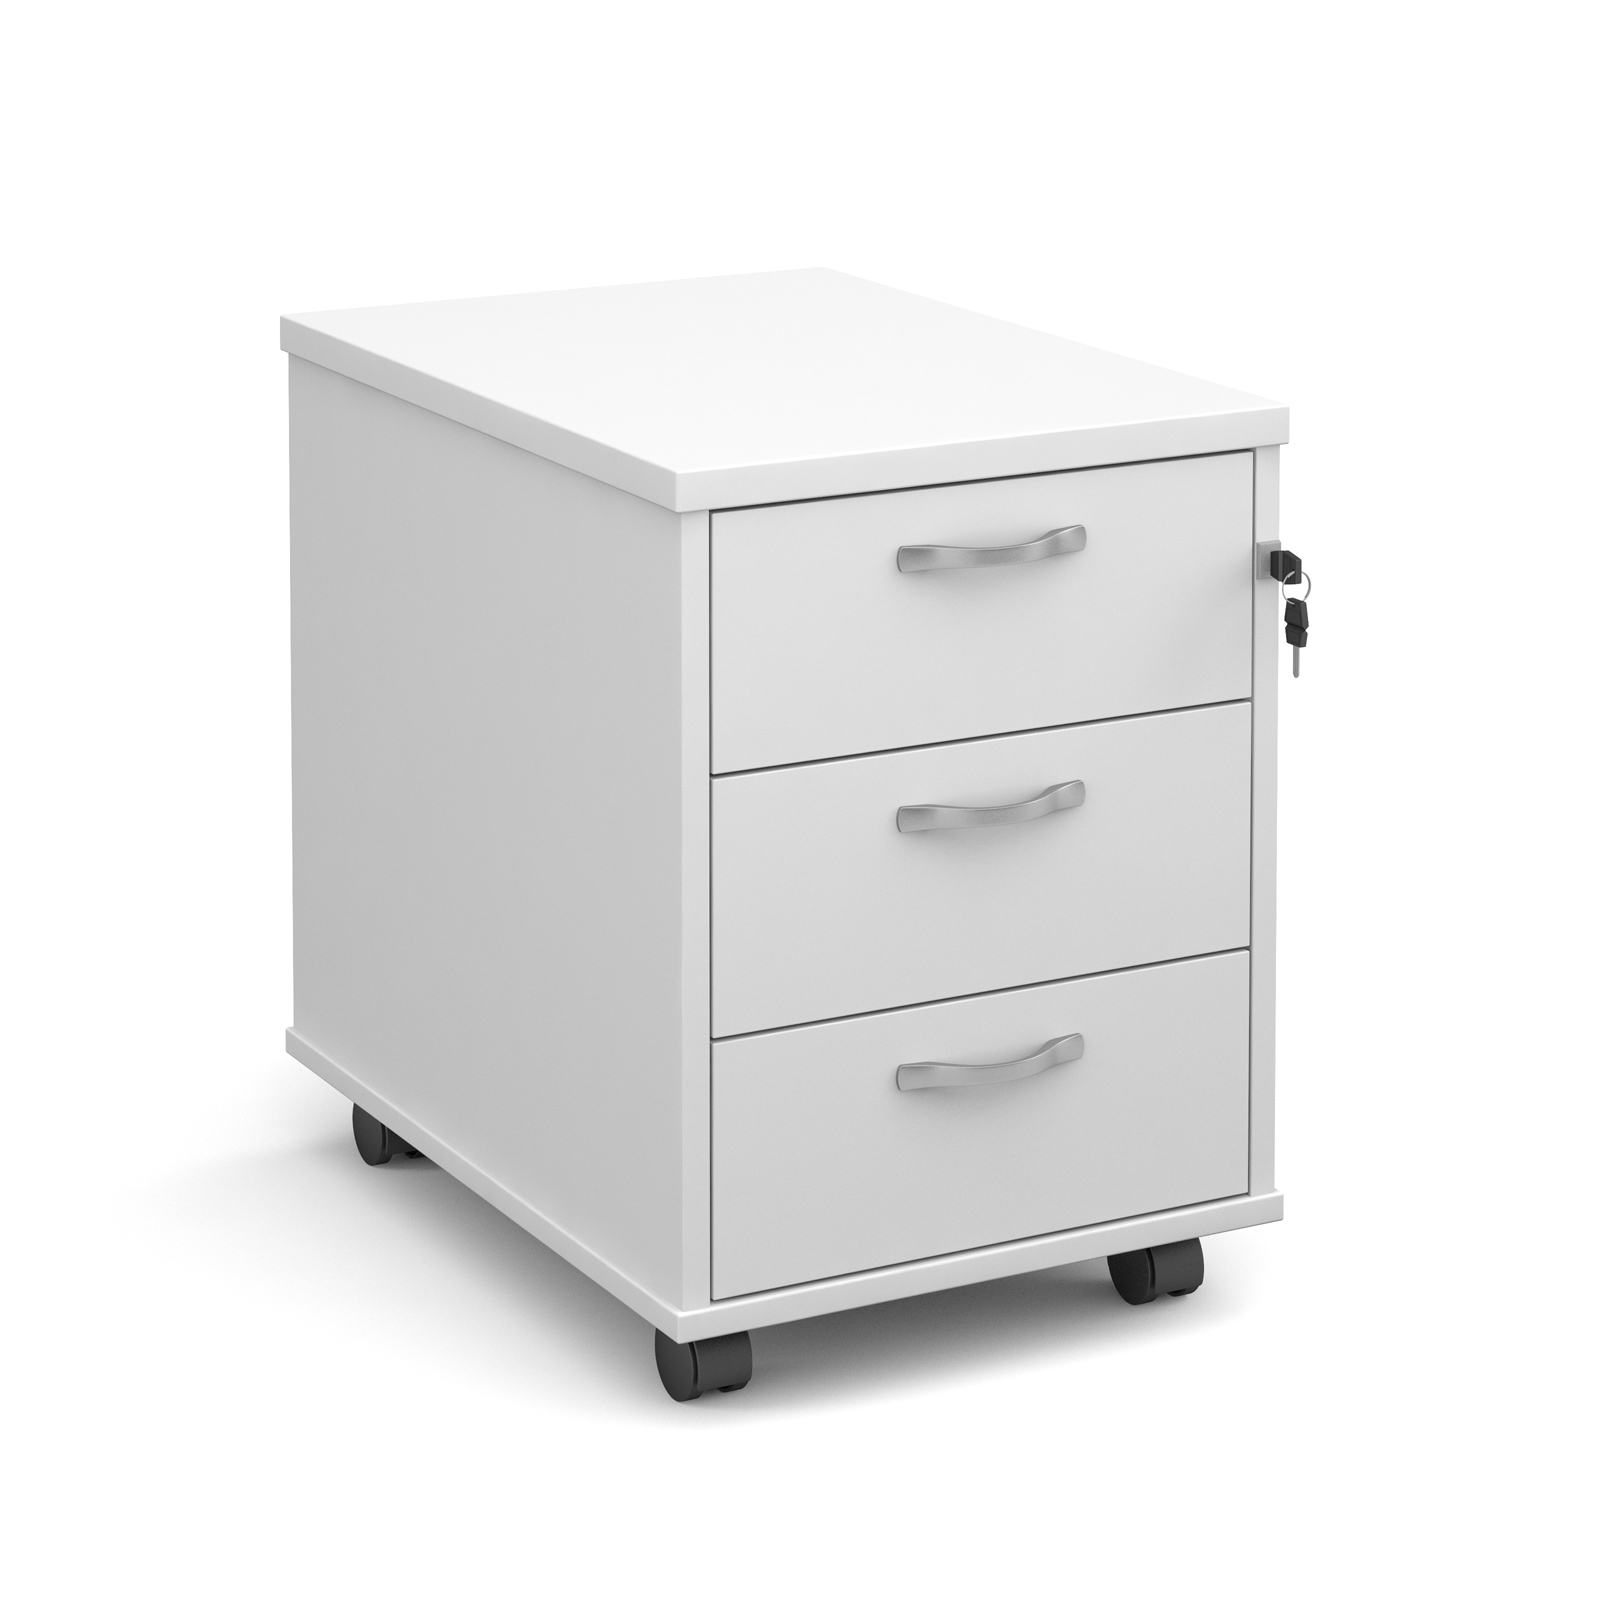 3 Drawer Mobile Pedestal in white